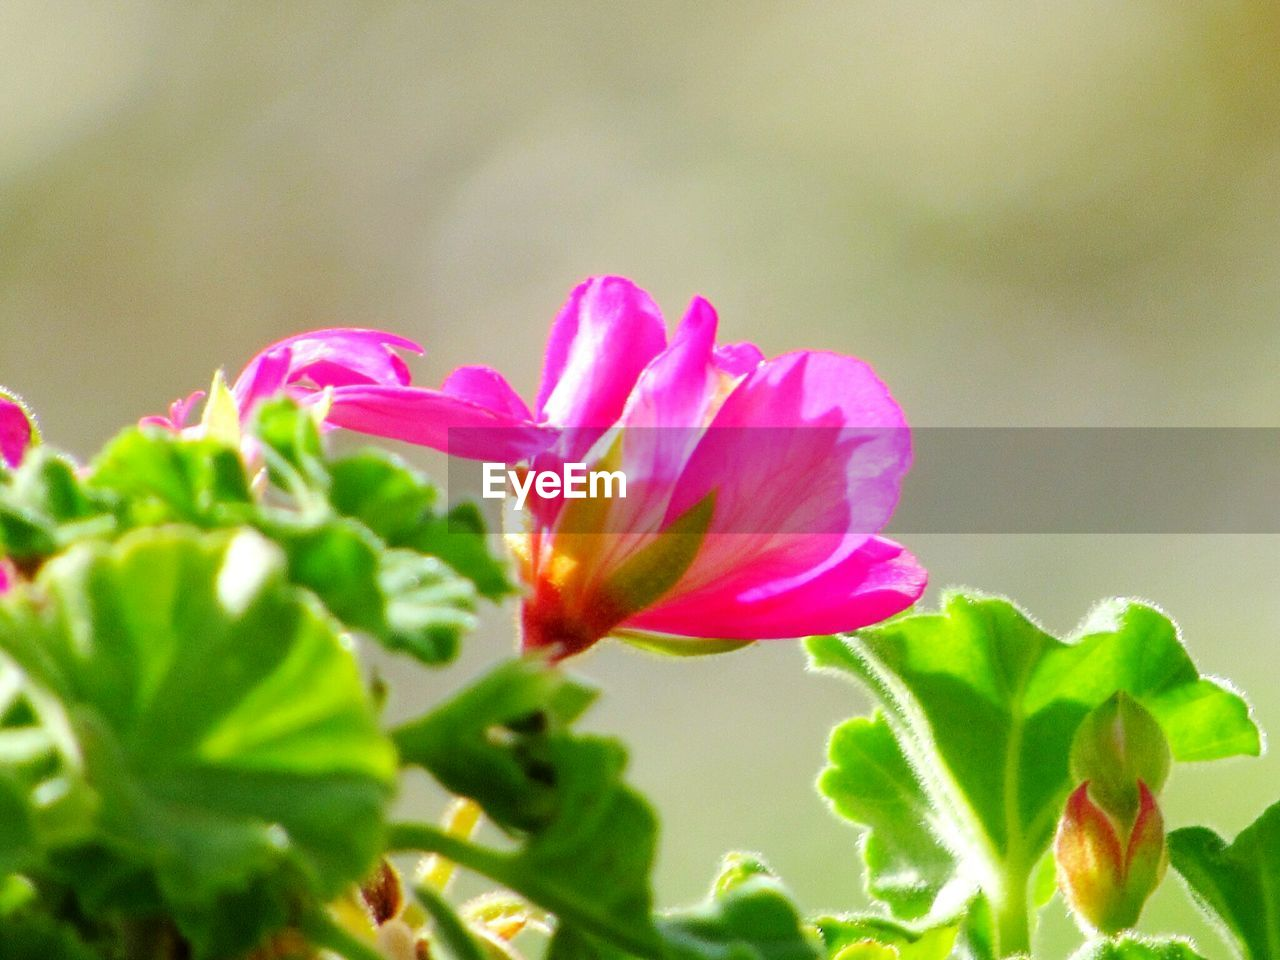 flower, petal, nature, fragility, beauty in nature, growth, freshness, plant, flower head, pink color, blooming, no people, green color, leaf, close-up, outdoors, day